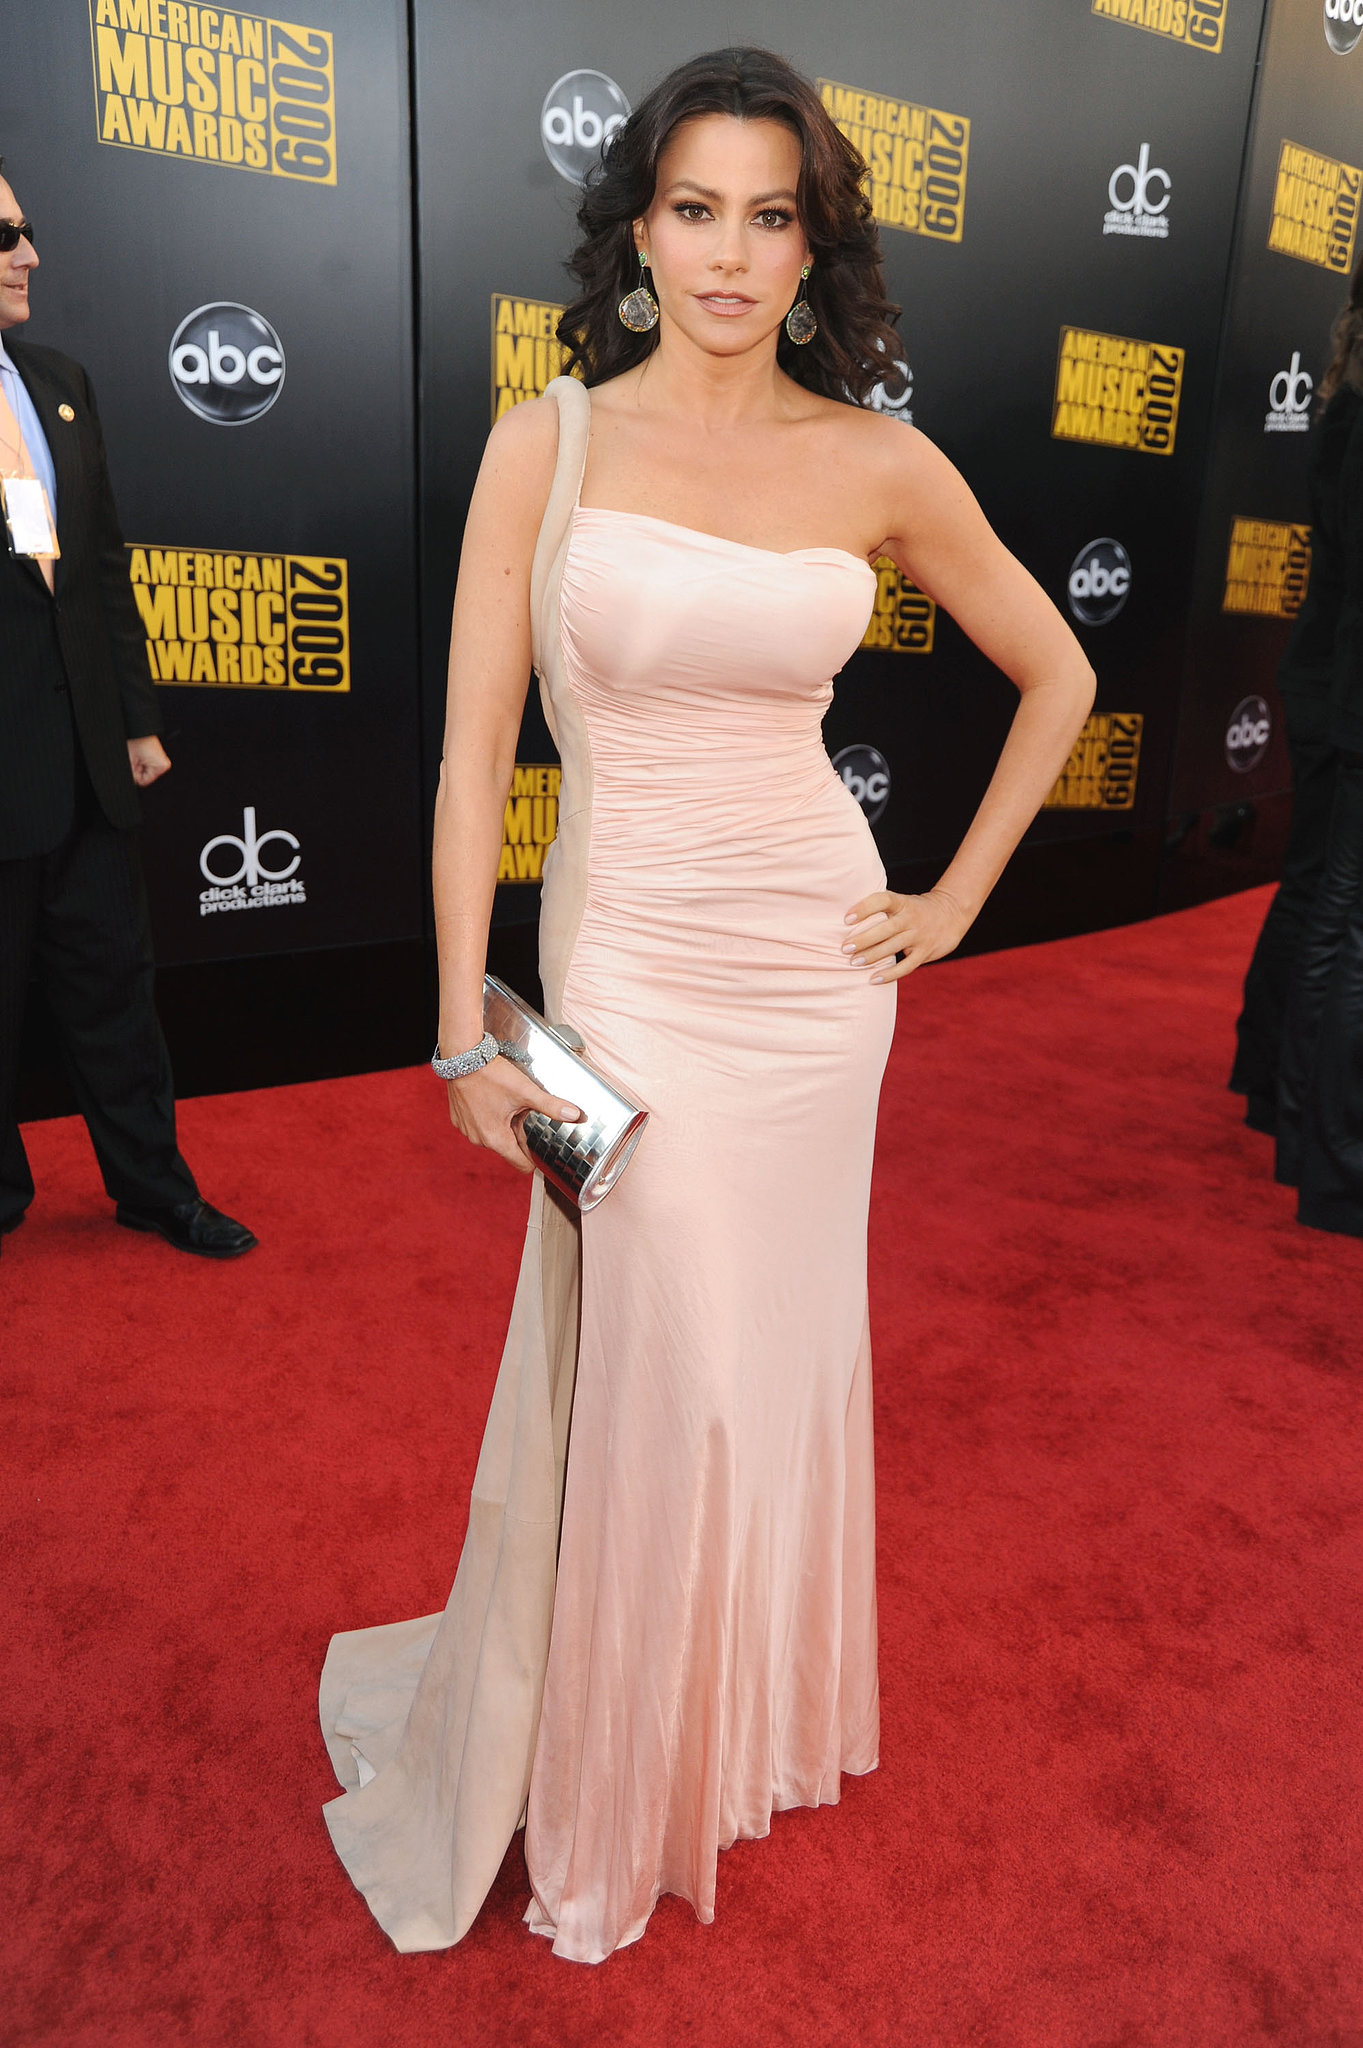 We are pretty sure this one-shouldered, curve-hugging creation Vergara rocked at the 2009 America Music Awards was made just for her flawless figure.